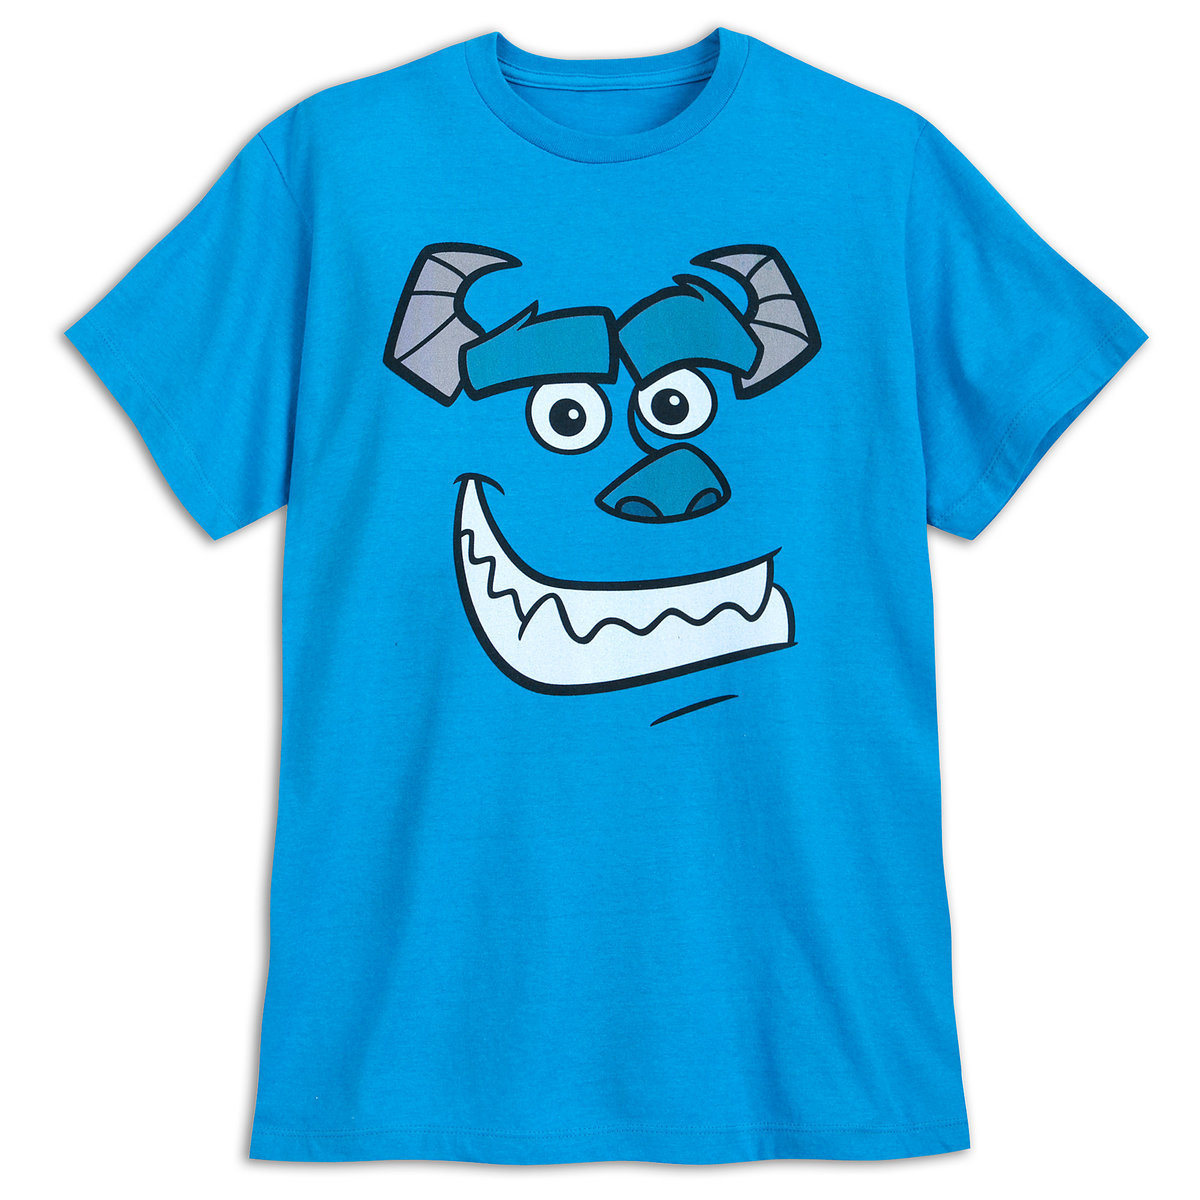 0c7e3a9854b4 Product Image of Sulley T-Shirt for Men - Monsters